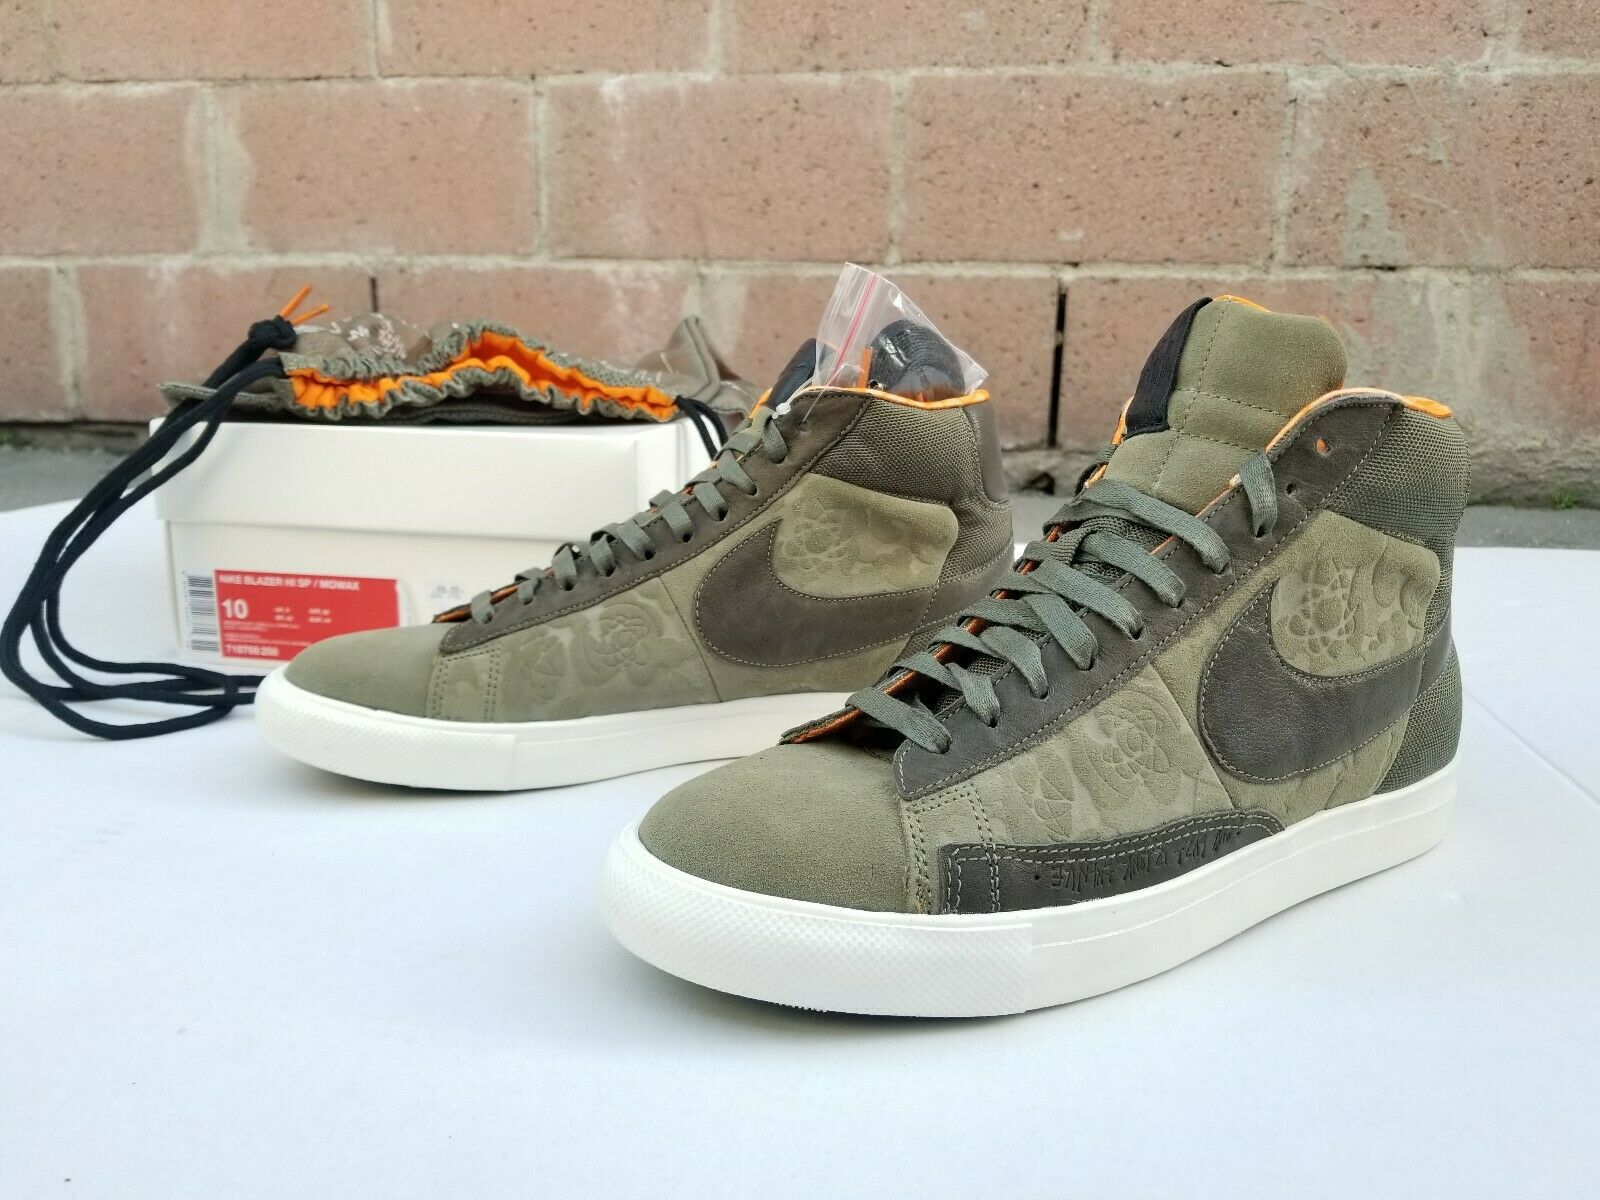 Nike Blazer SP Mowax Hi Men Size 10  Olive Copper orange 718768 208 New DS Rare